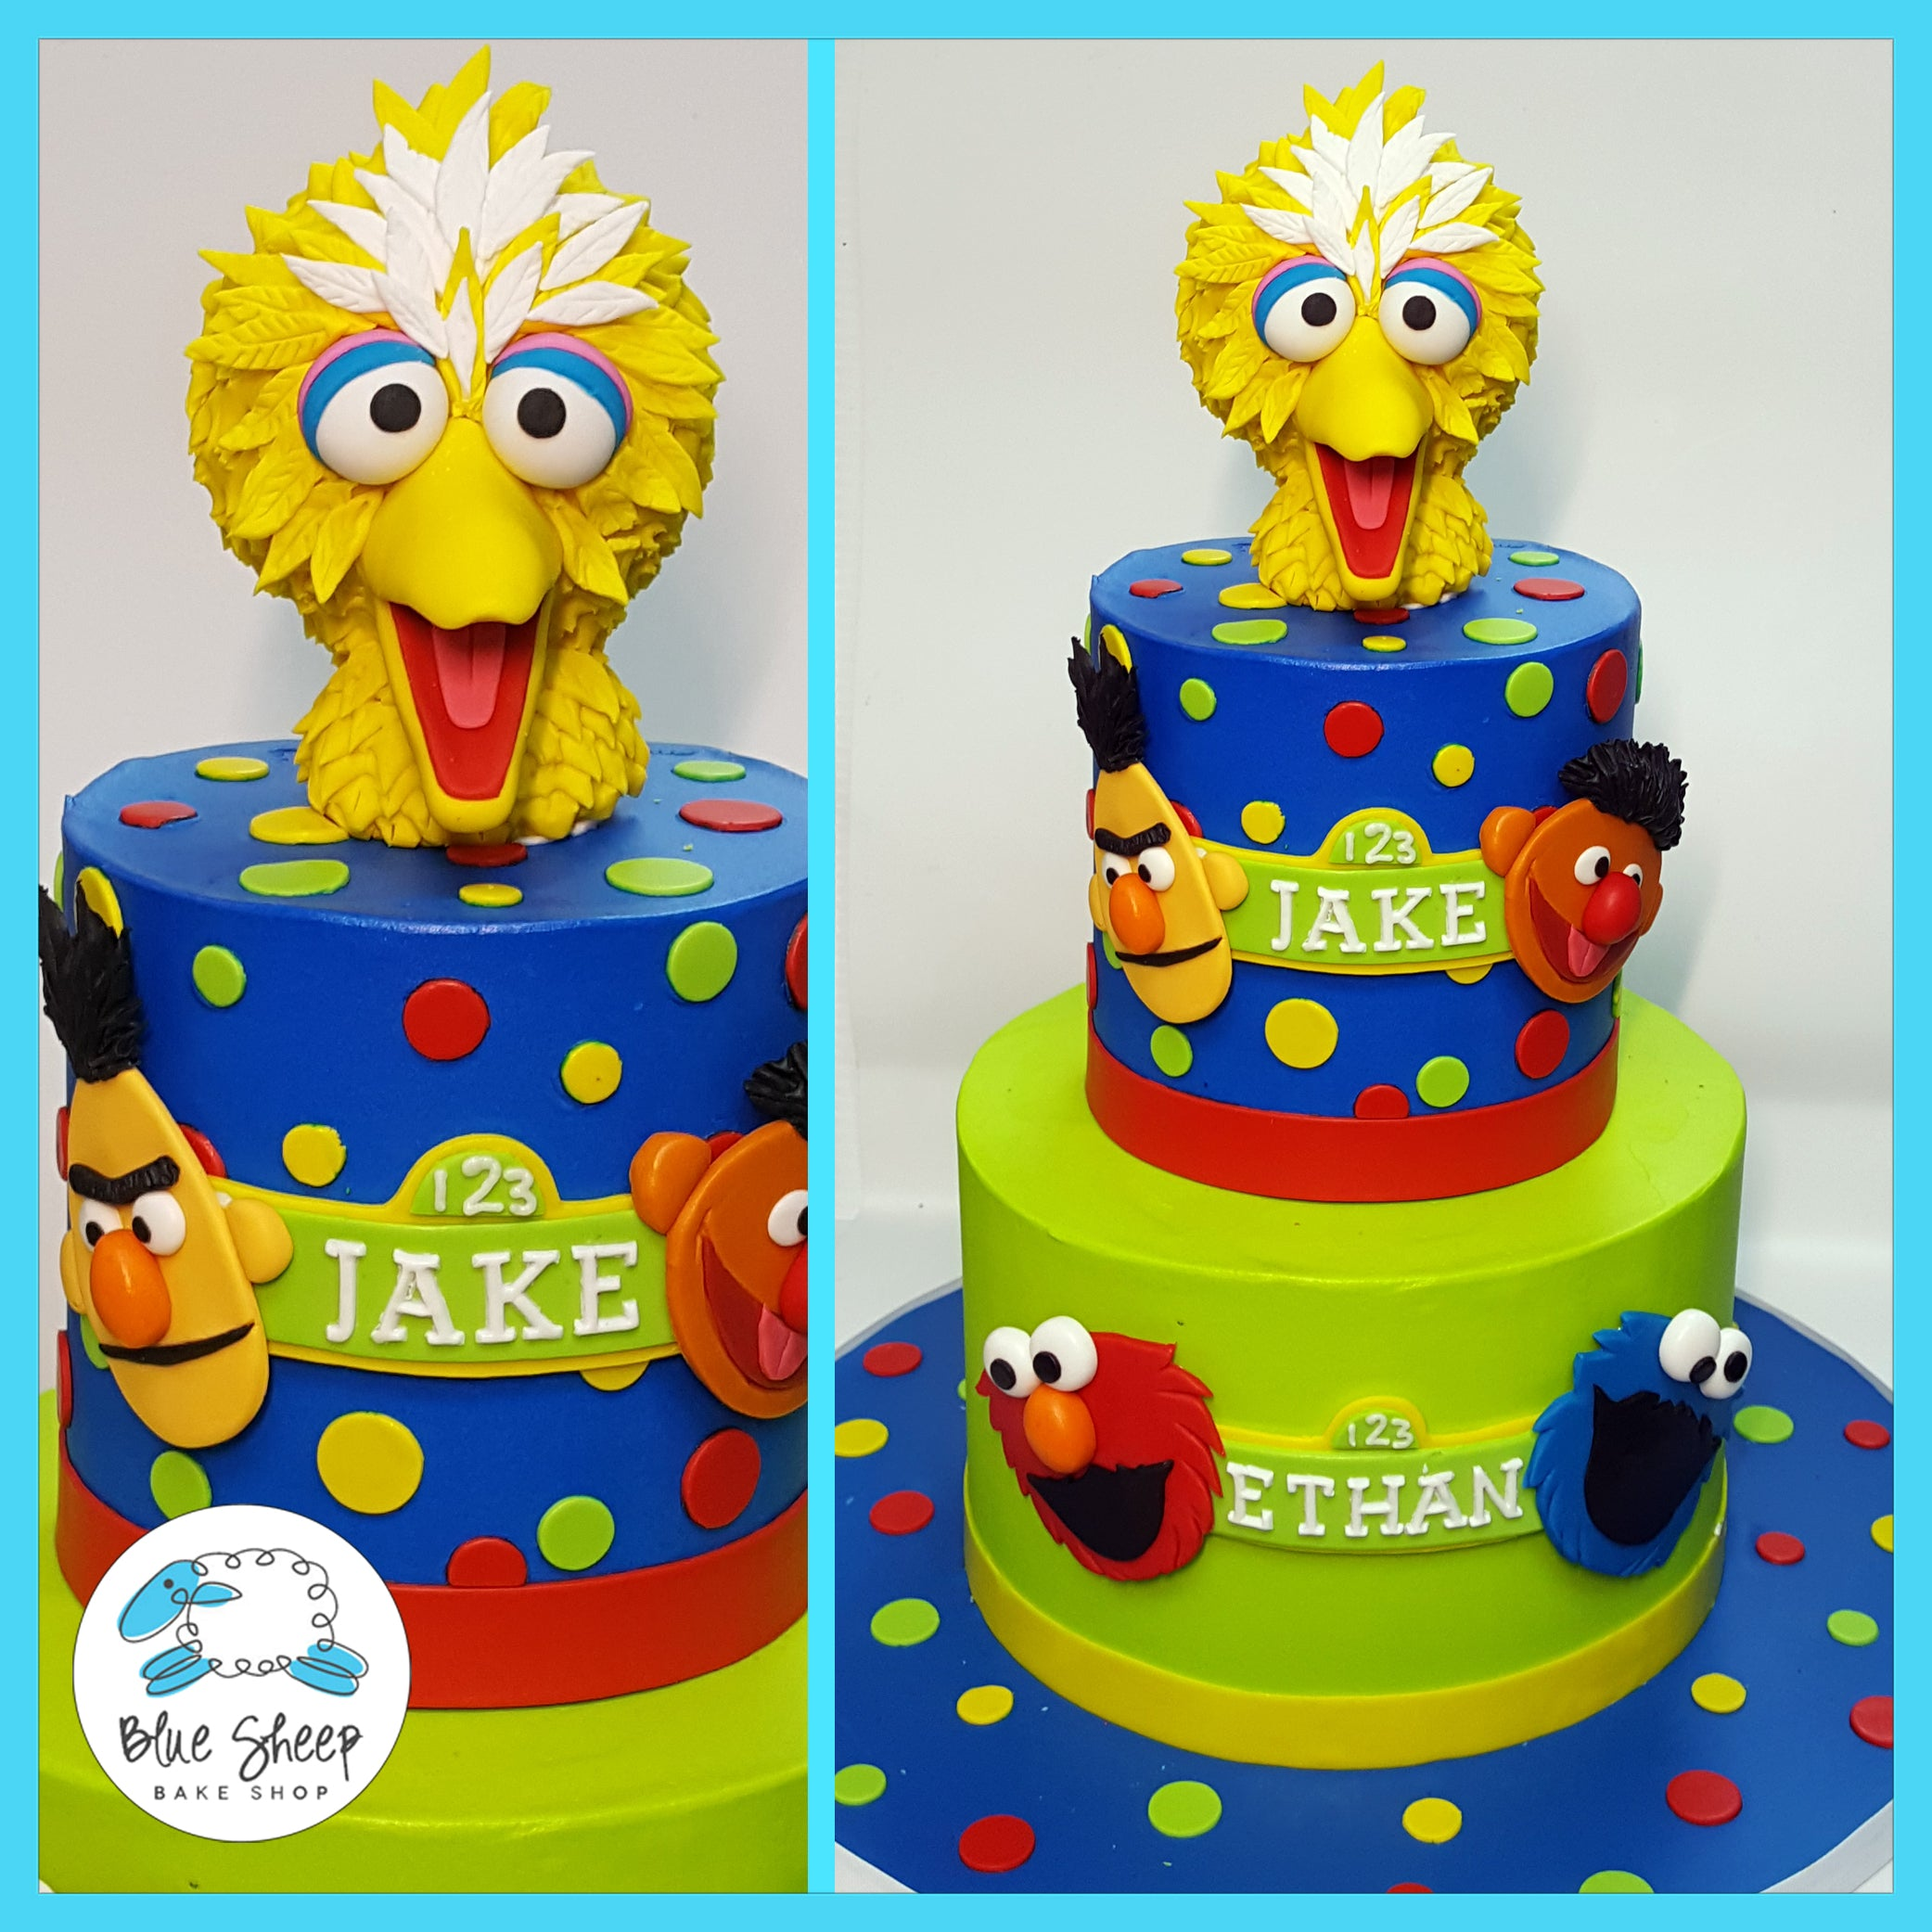 Jake Ethan S Sesame Street Birthday Cake Blue Sheep Bake Shop